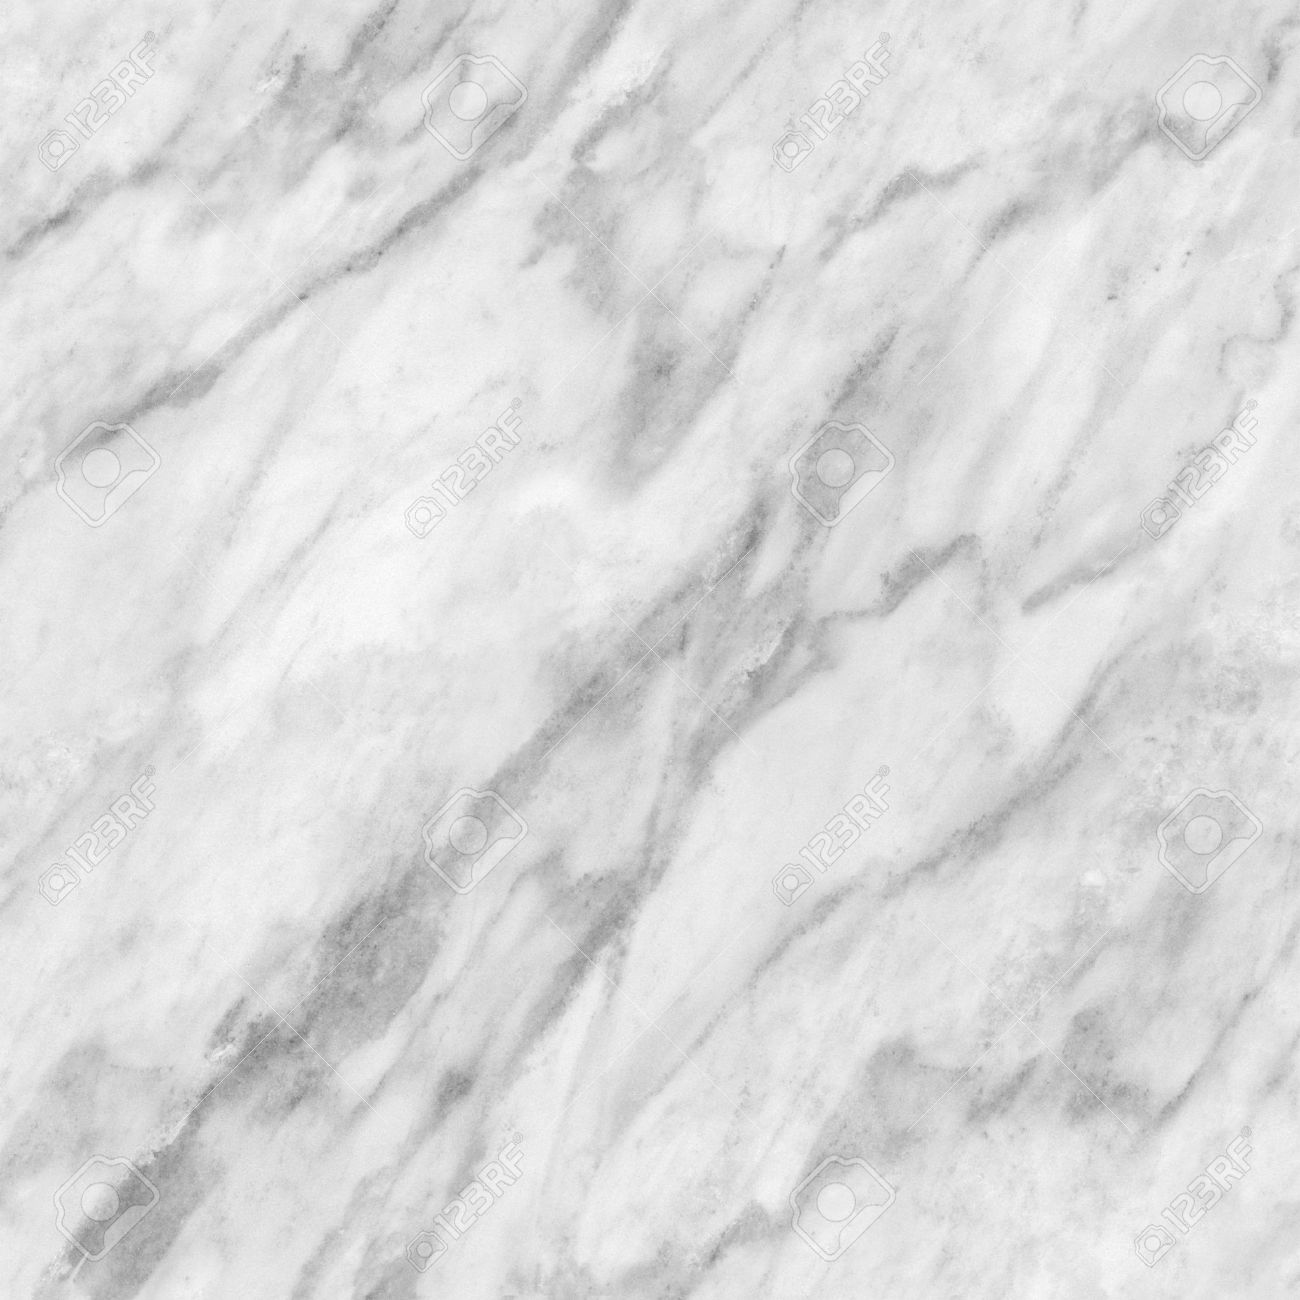 Marble Background Images Stock Pictures Royalty Free Marble